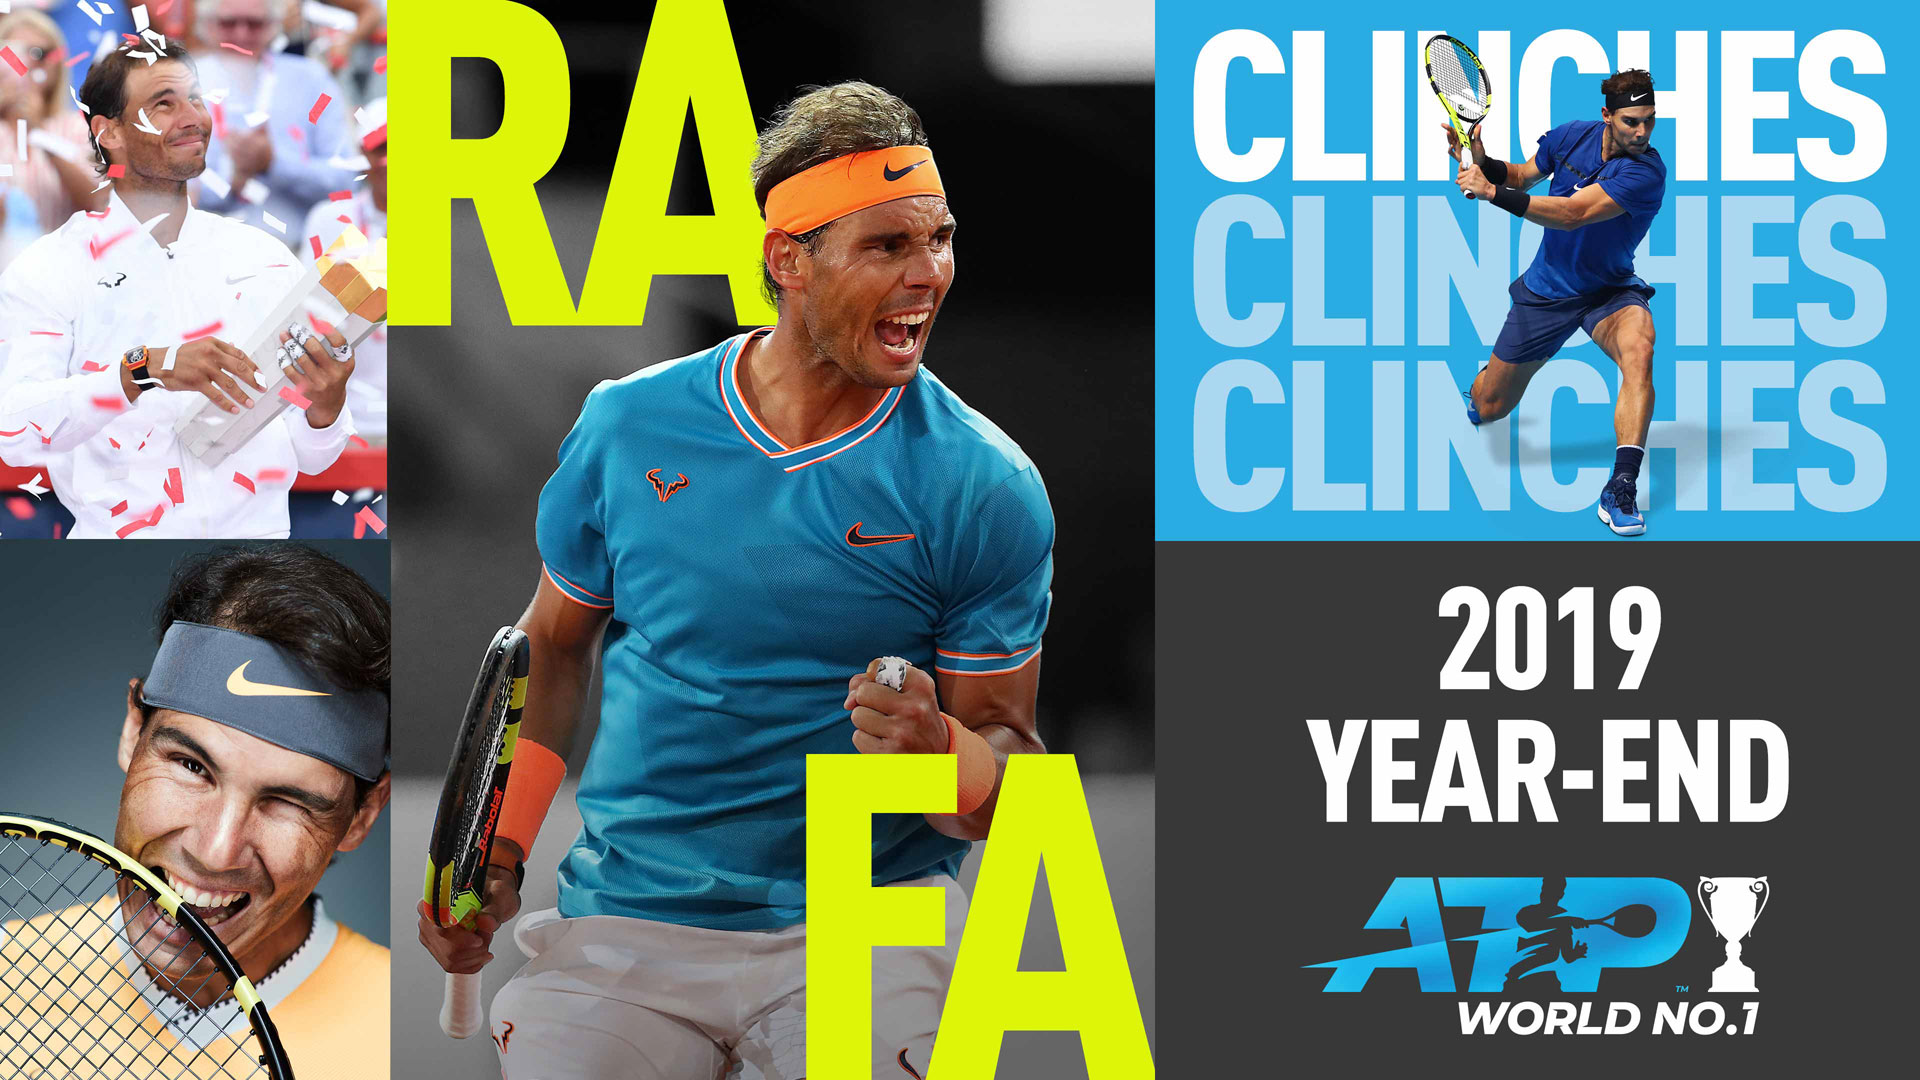 Nadal Clinches Year End No 1 Atp Ranking For Fifth Time Tennis Tourtalk